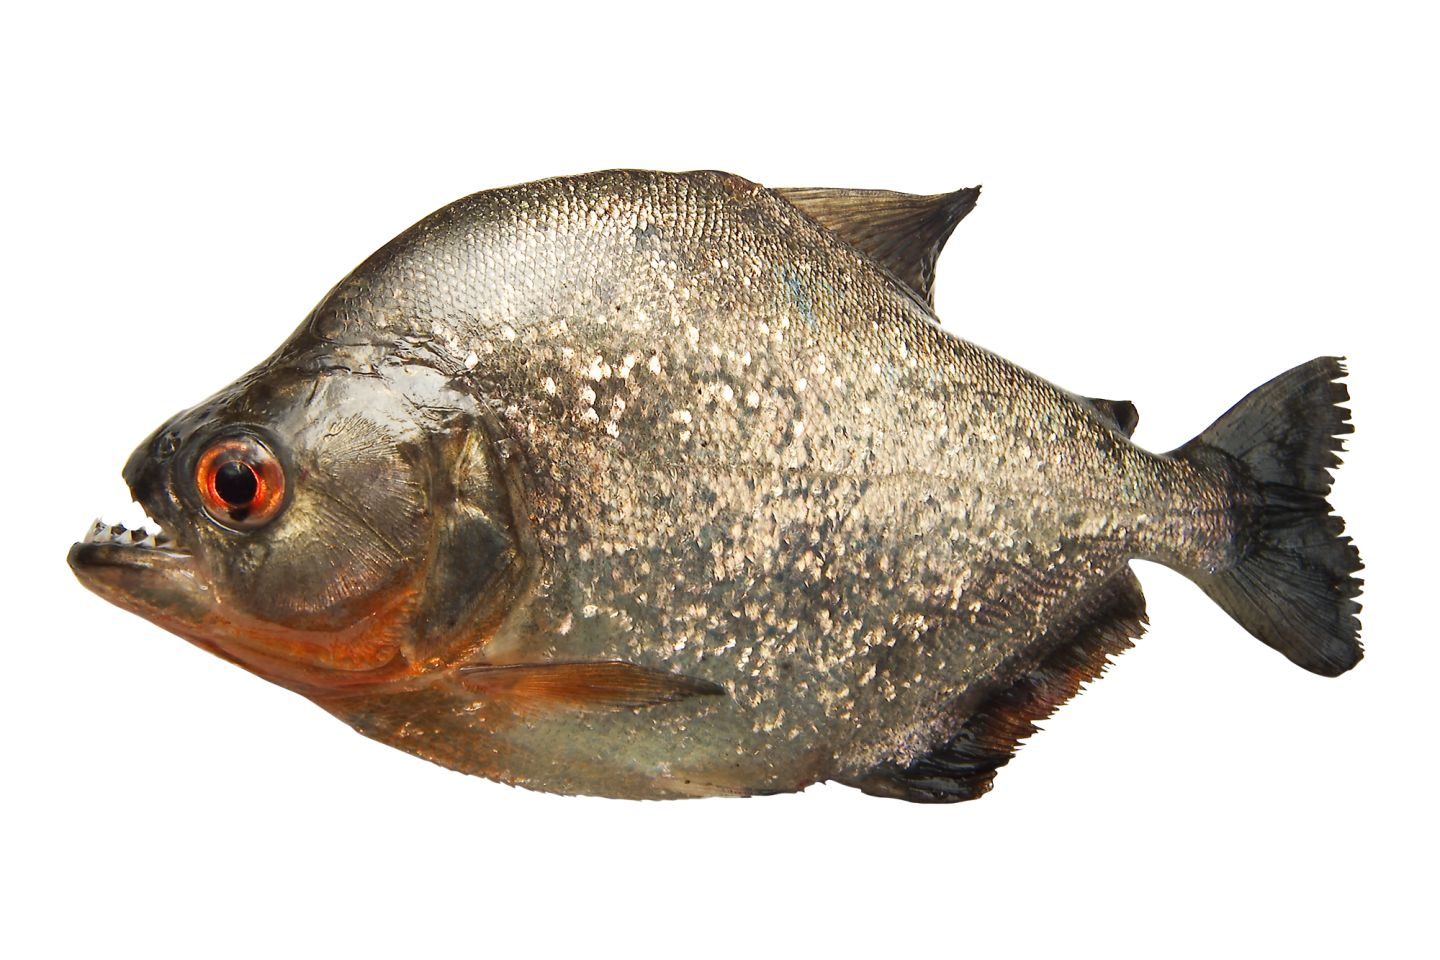 Piranha  Definition of Piranha by MerriamWebster